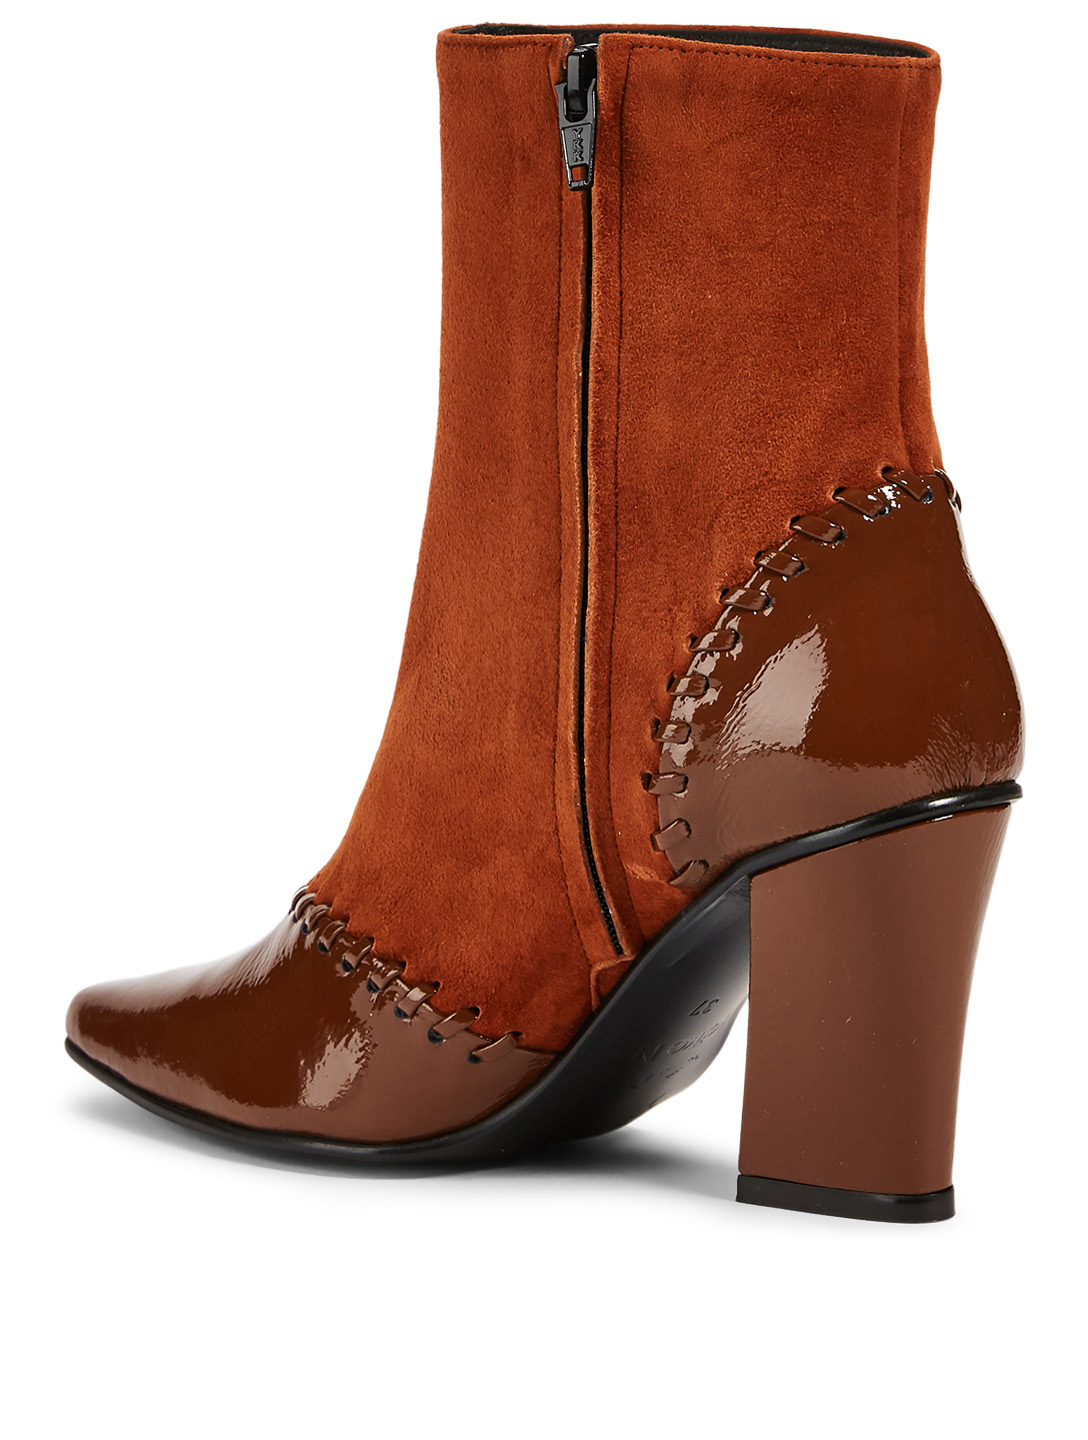 REIKE NEN Turnover Slim Suede And Patent Leather Ankle Boots Femmes Marron